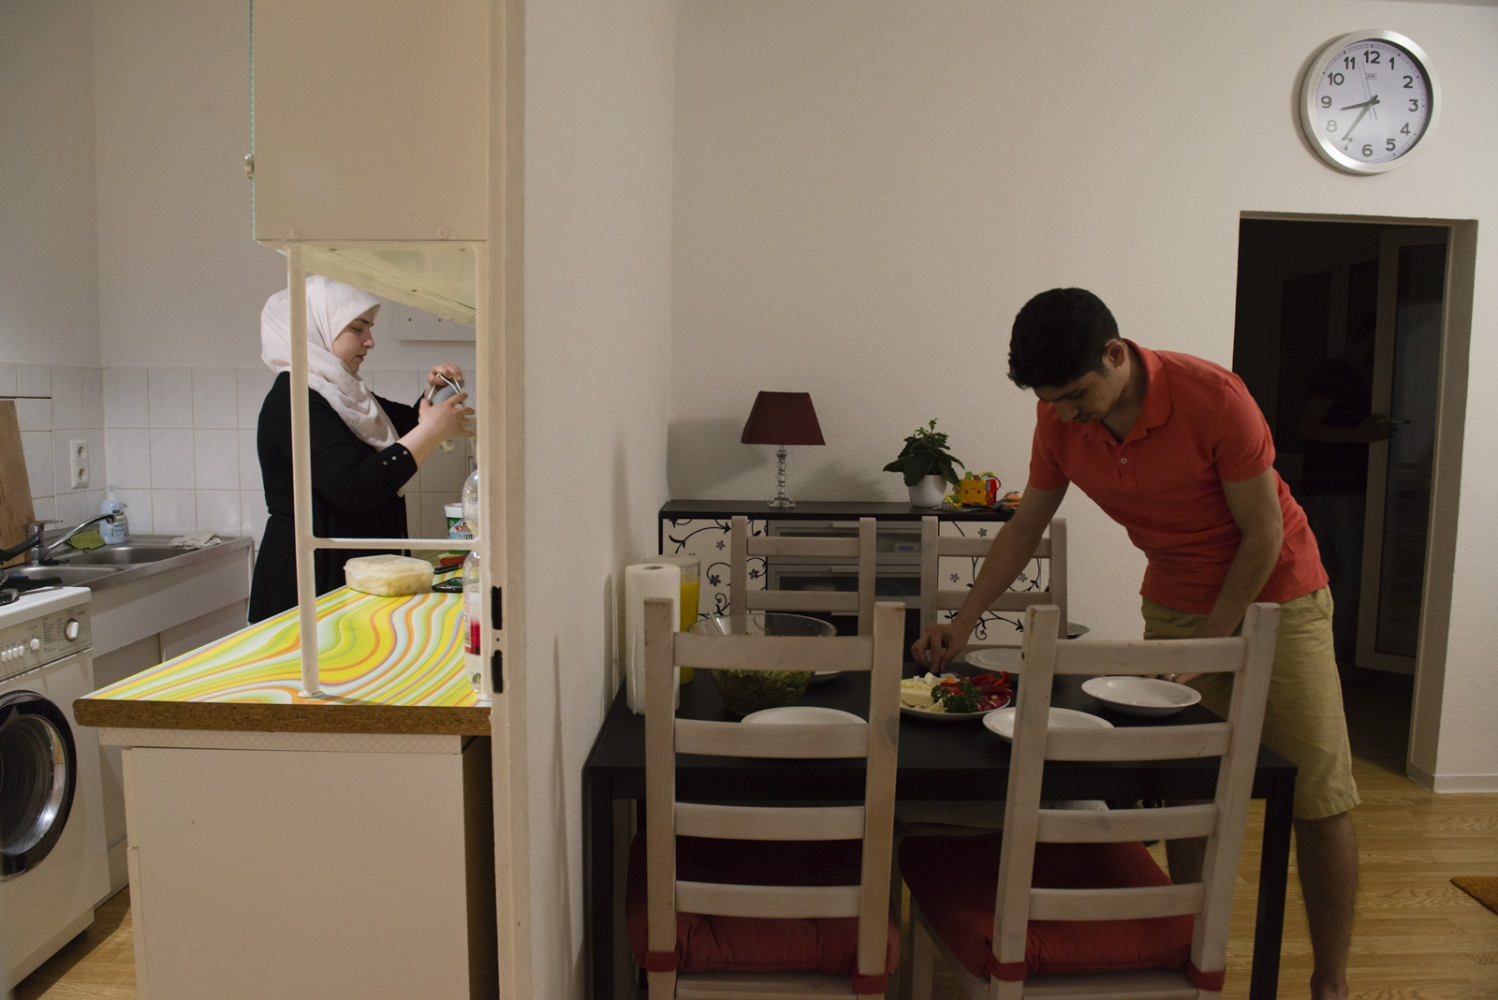 BERLIN  |  GERMANY | 2017-04-02 | Maher (24) and Amani (32) prepare dinner together in their new home in Lichtenberg, Berlin. The couple, both from Damascus and IT students, had to quit school and flee Syria due to the ongoing war there. The couple arrived in Germany in July 2015 and have settled down and started a new family with giving birth to Baby Kareem who is not 4 months old at this time.BERLIN, GERMANY | 2017-04-02 | Maher (24) and Amani (32) prepare dinner together in their new home in Lichtenberg, Berlin. The couple, both from Damascus and IT students, had to quit school and flee Syria due to the ongoing war there. The couple arrived in Germany in July 2015 and have settled down and started a new family with giving birth to Baby Kareem who is not 4 months old at this time.